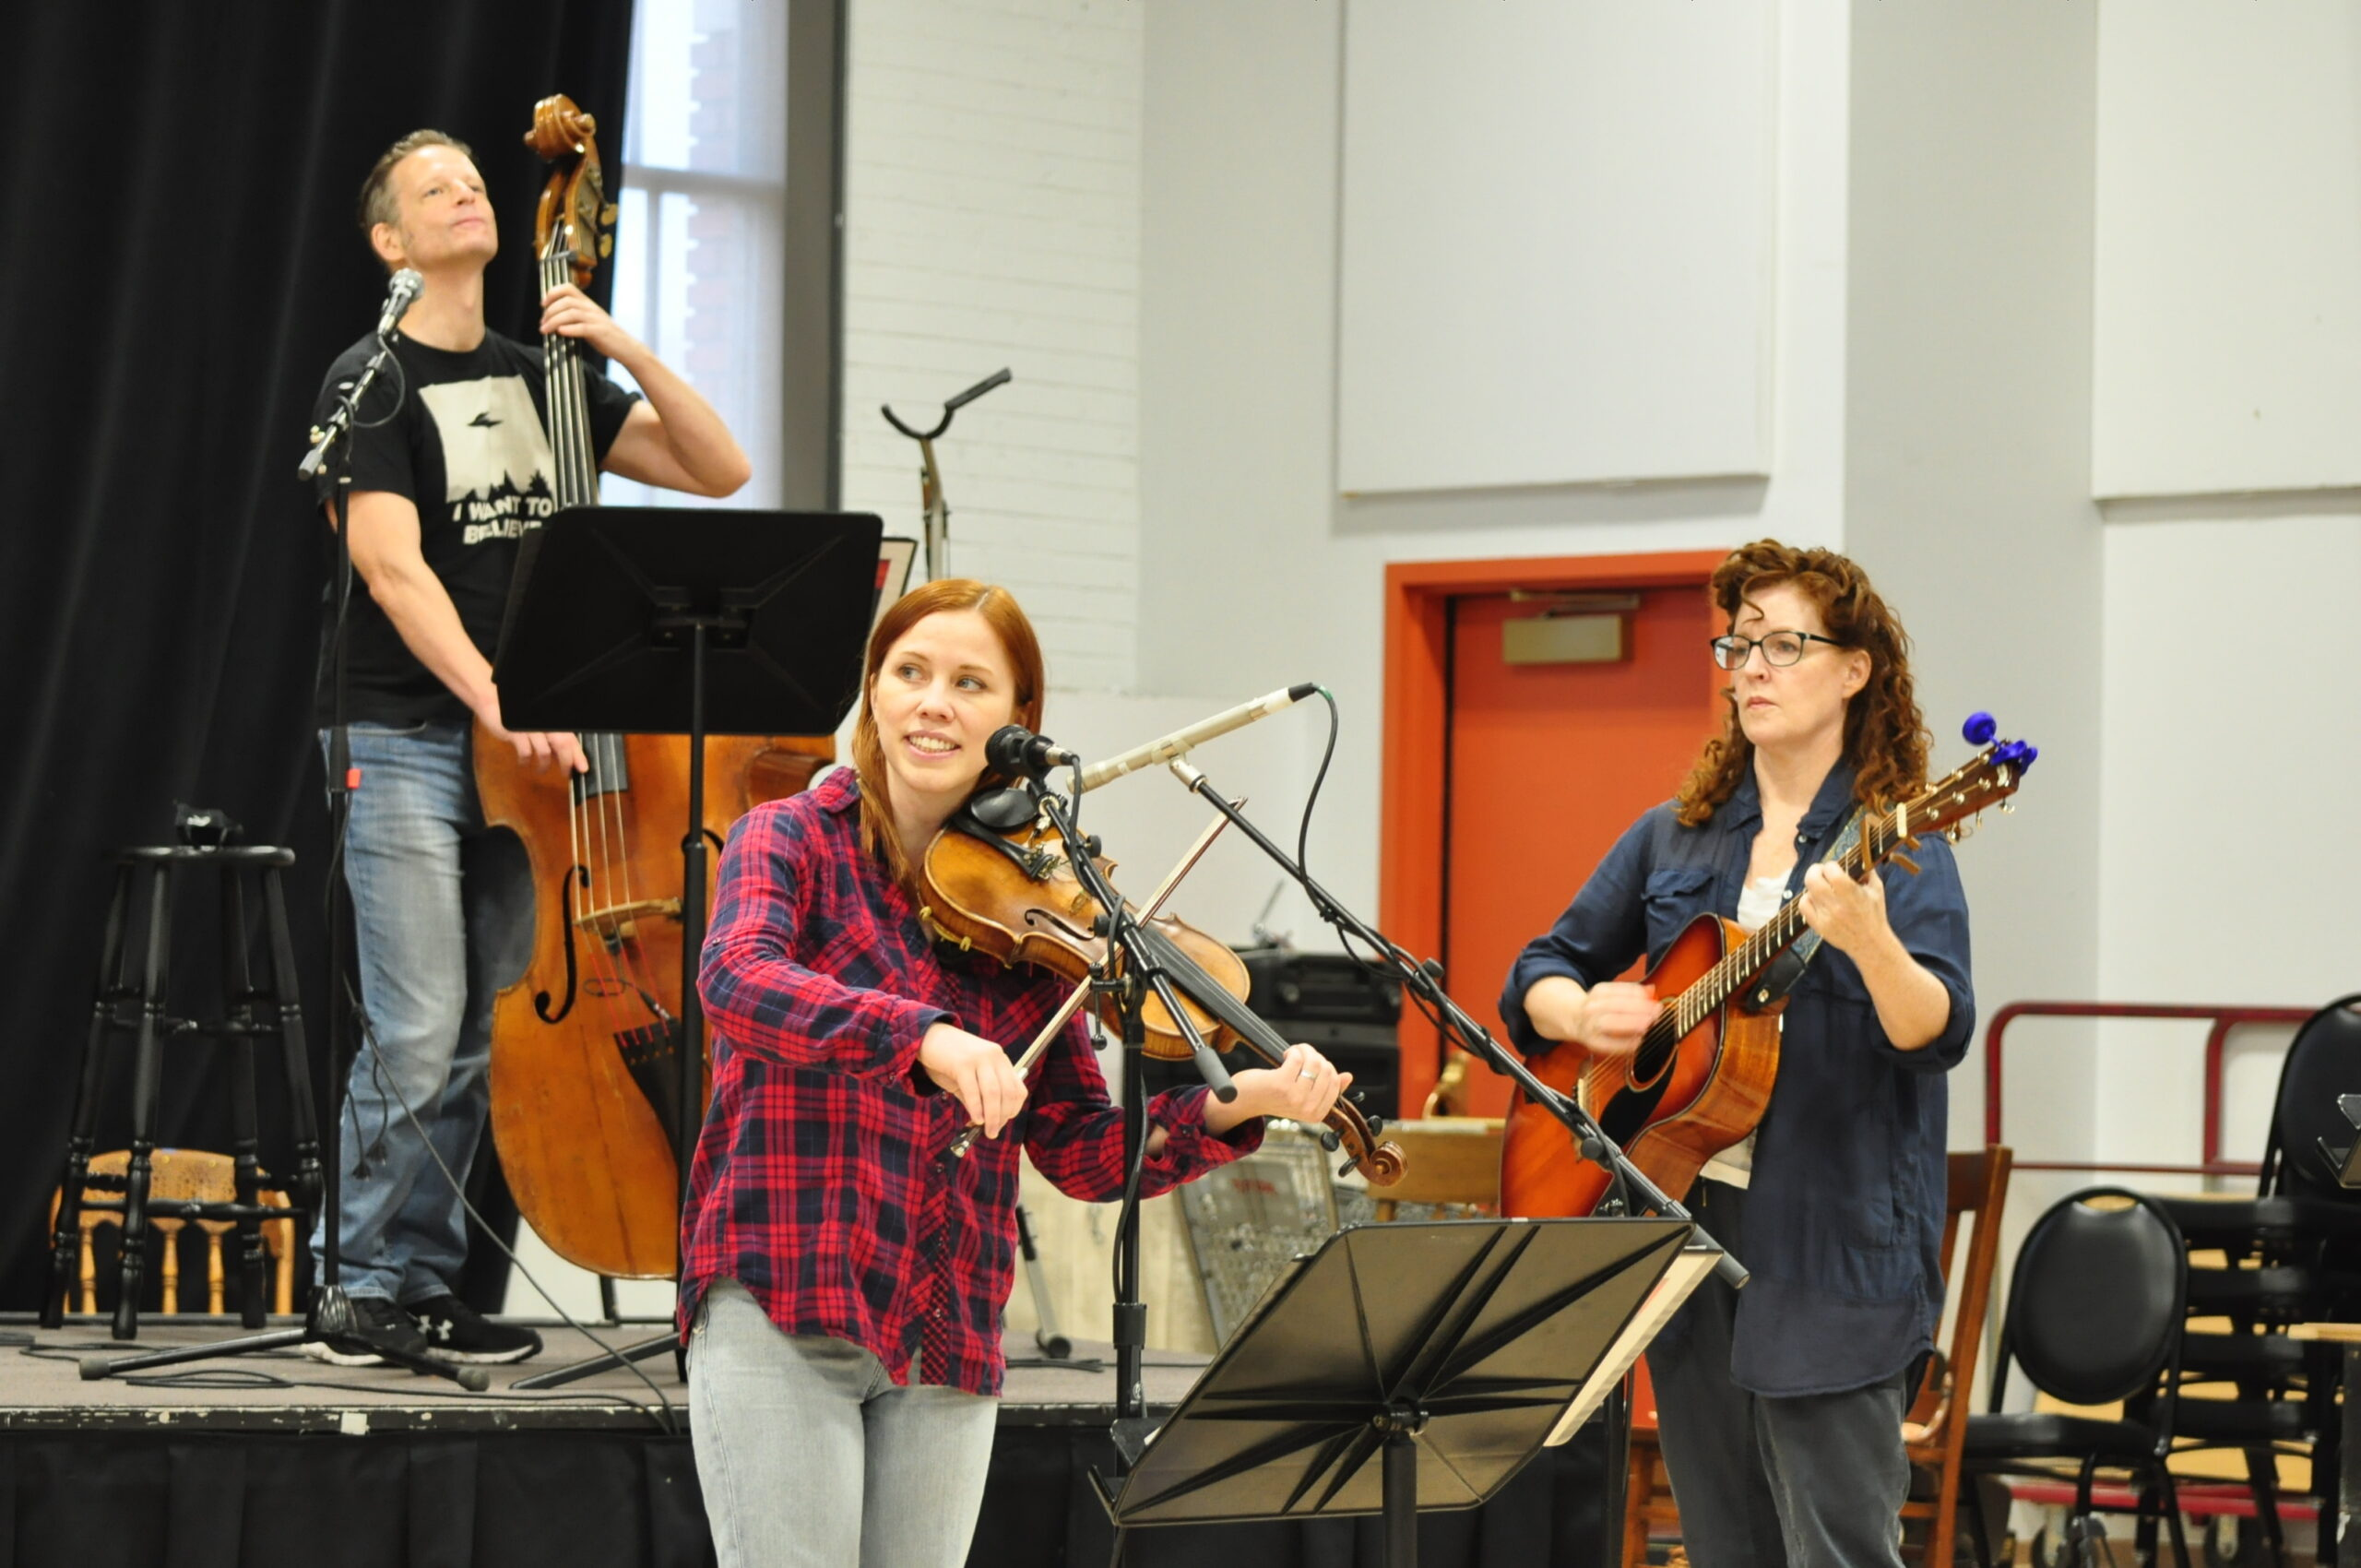 Joe Casey (left), Kendra Jo Brook and Linda Mugleston play during rehearsals for Wild Fire, a new show by the Denver Center for the Performing Arts.